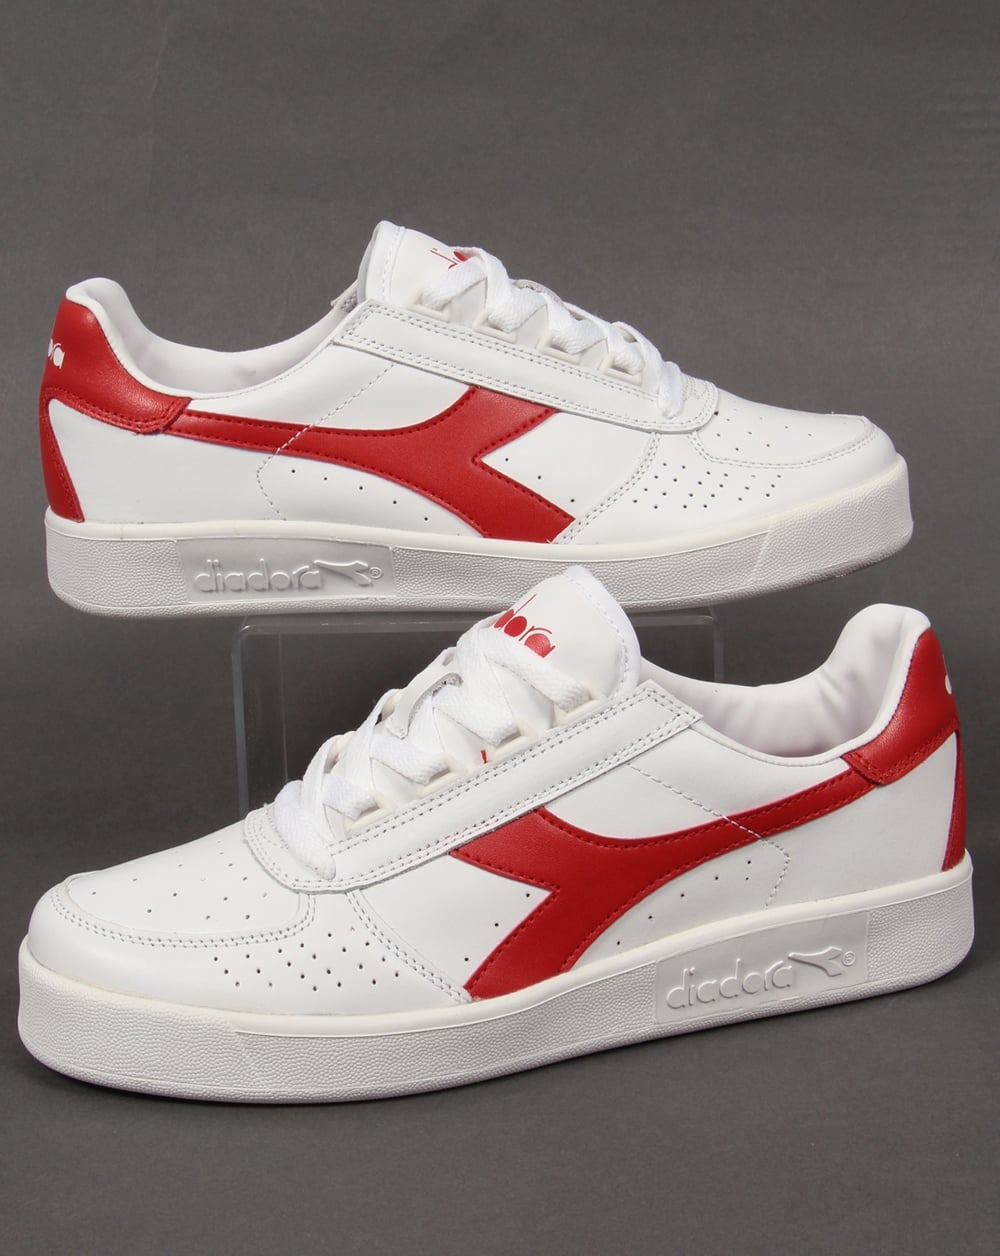 2fb82ab9 Diadora B. Elite Trainers III White/red leather